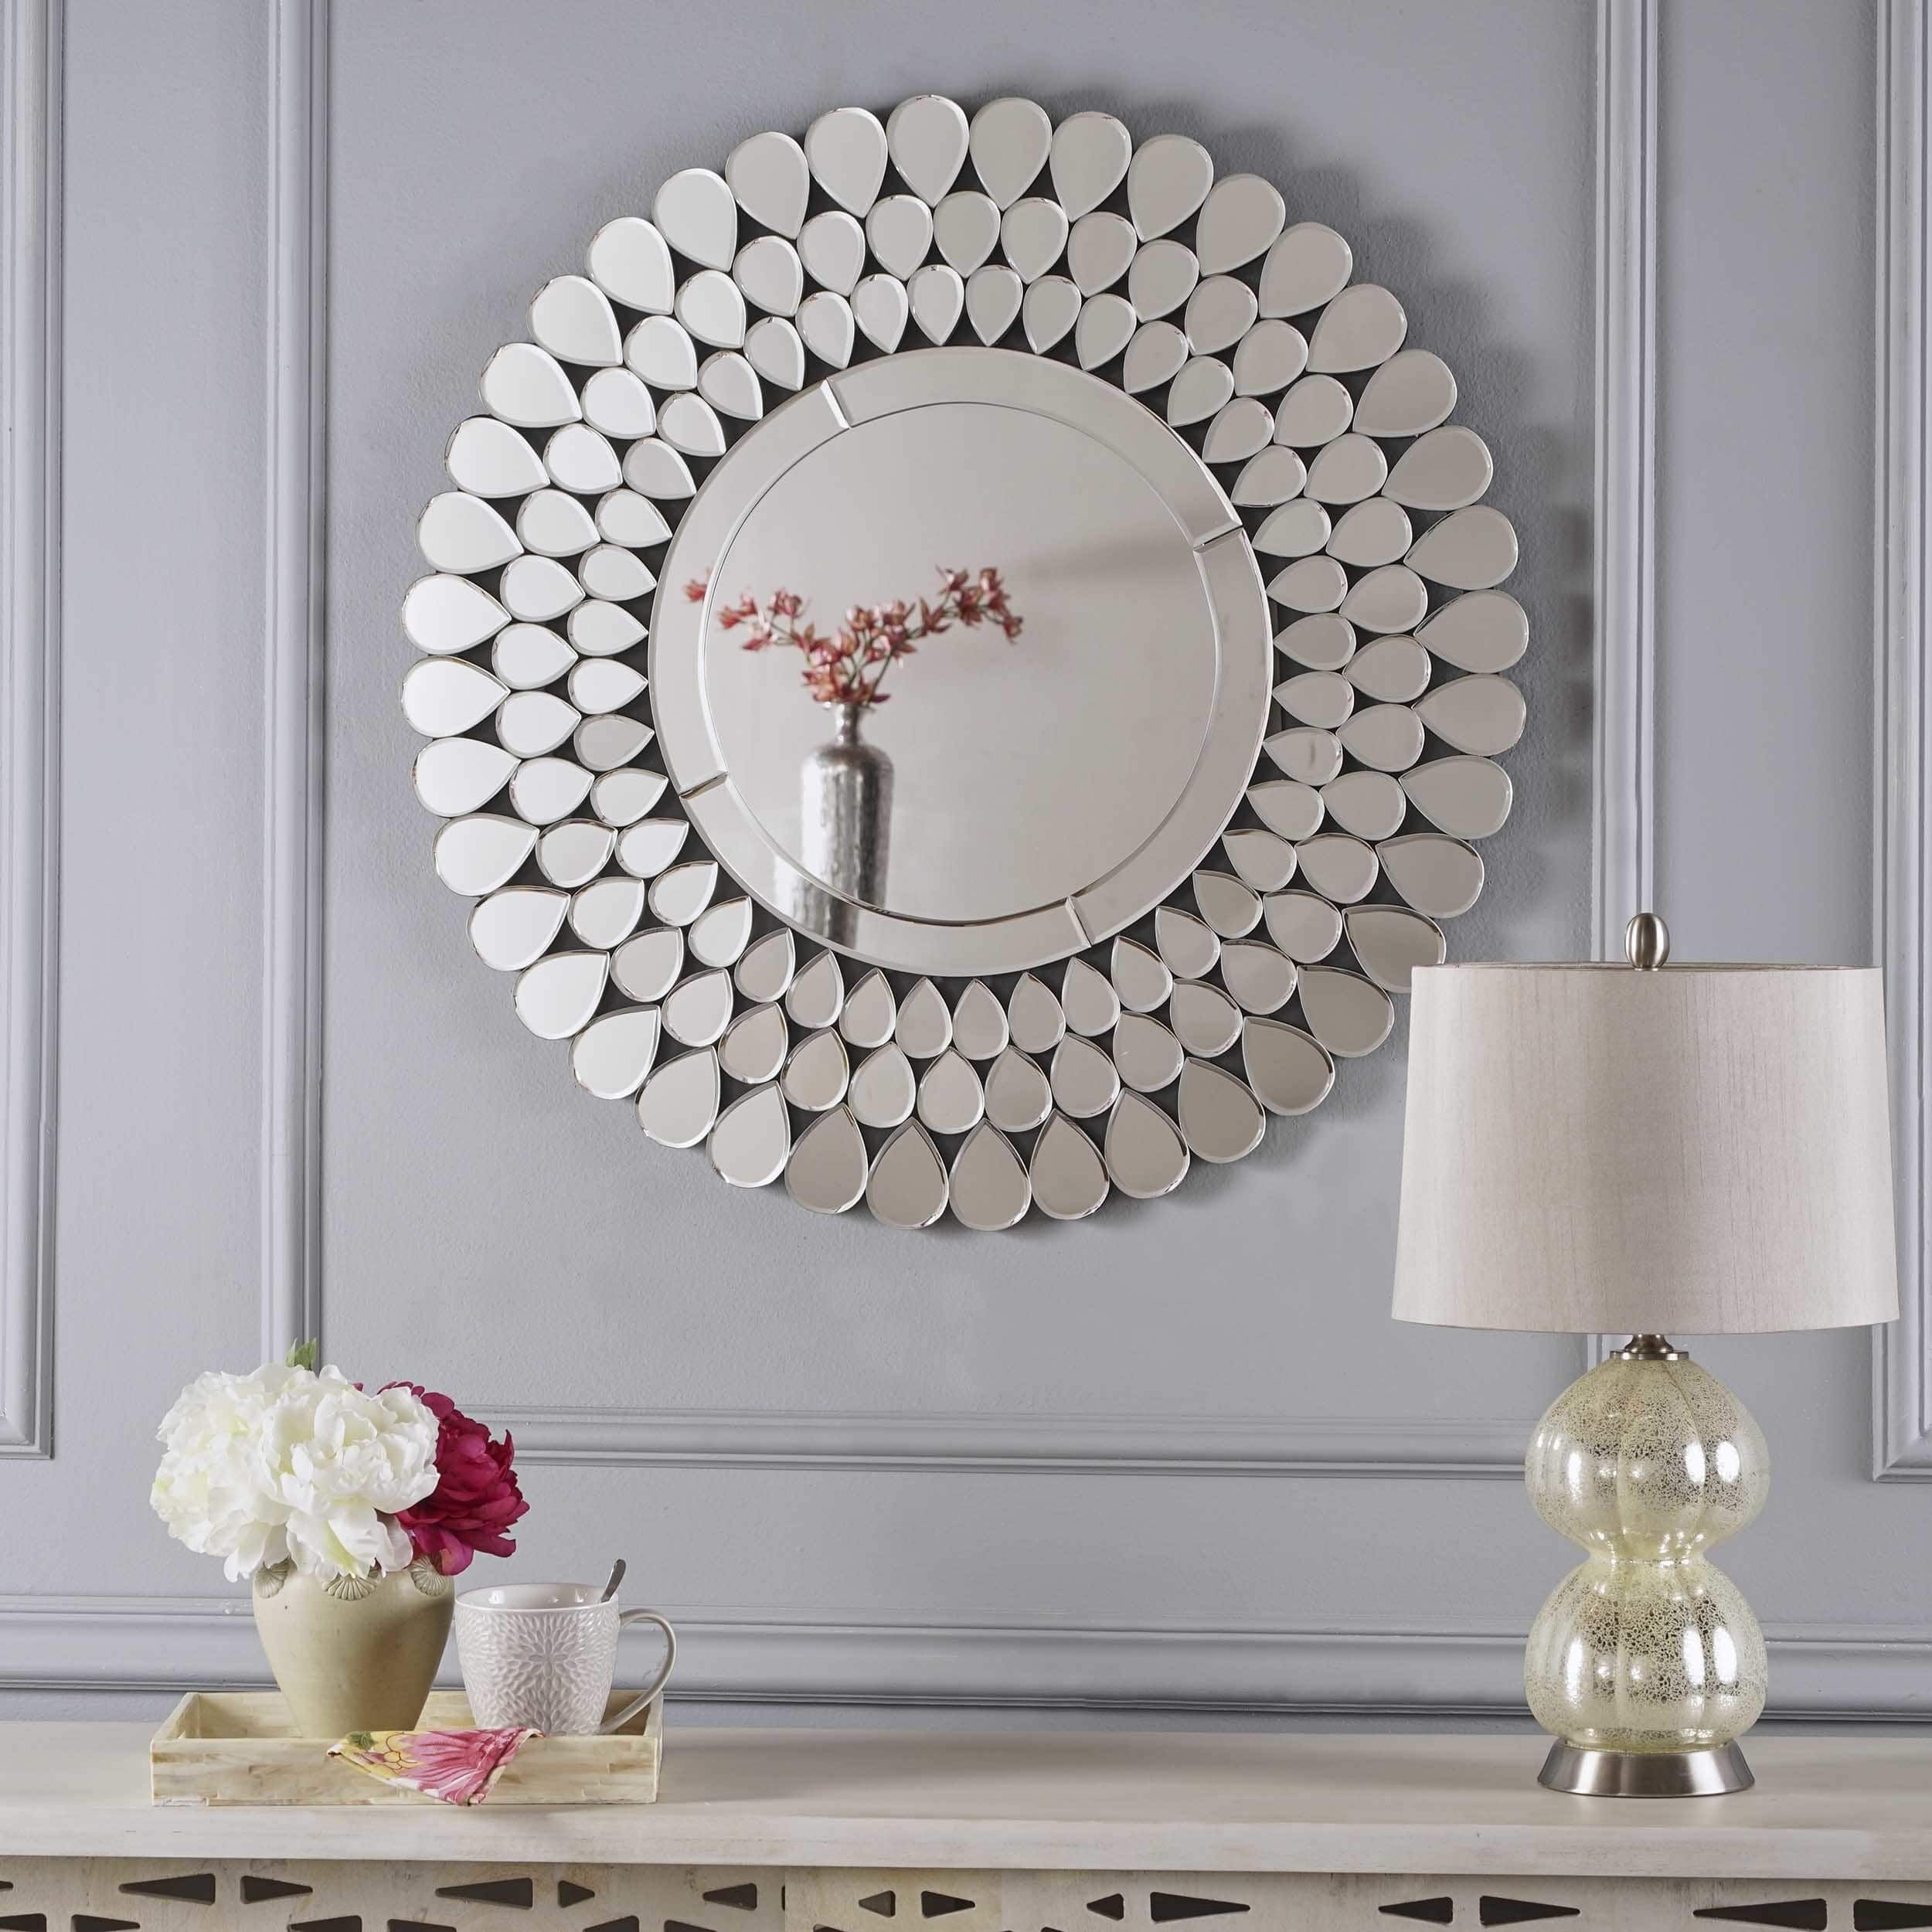 3Rd Fl Irmgard Round Flower Wall Mirrorchristopher Regarding Sajish Oval Crystal Wall Mirrors (View 7 of 30)